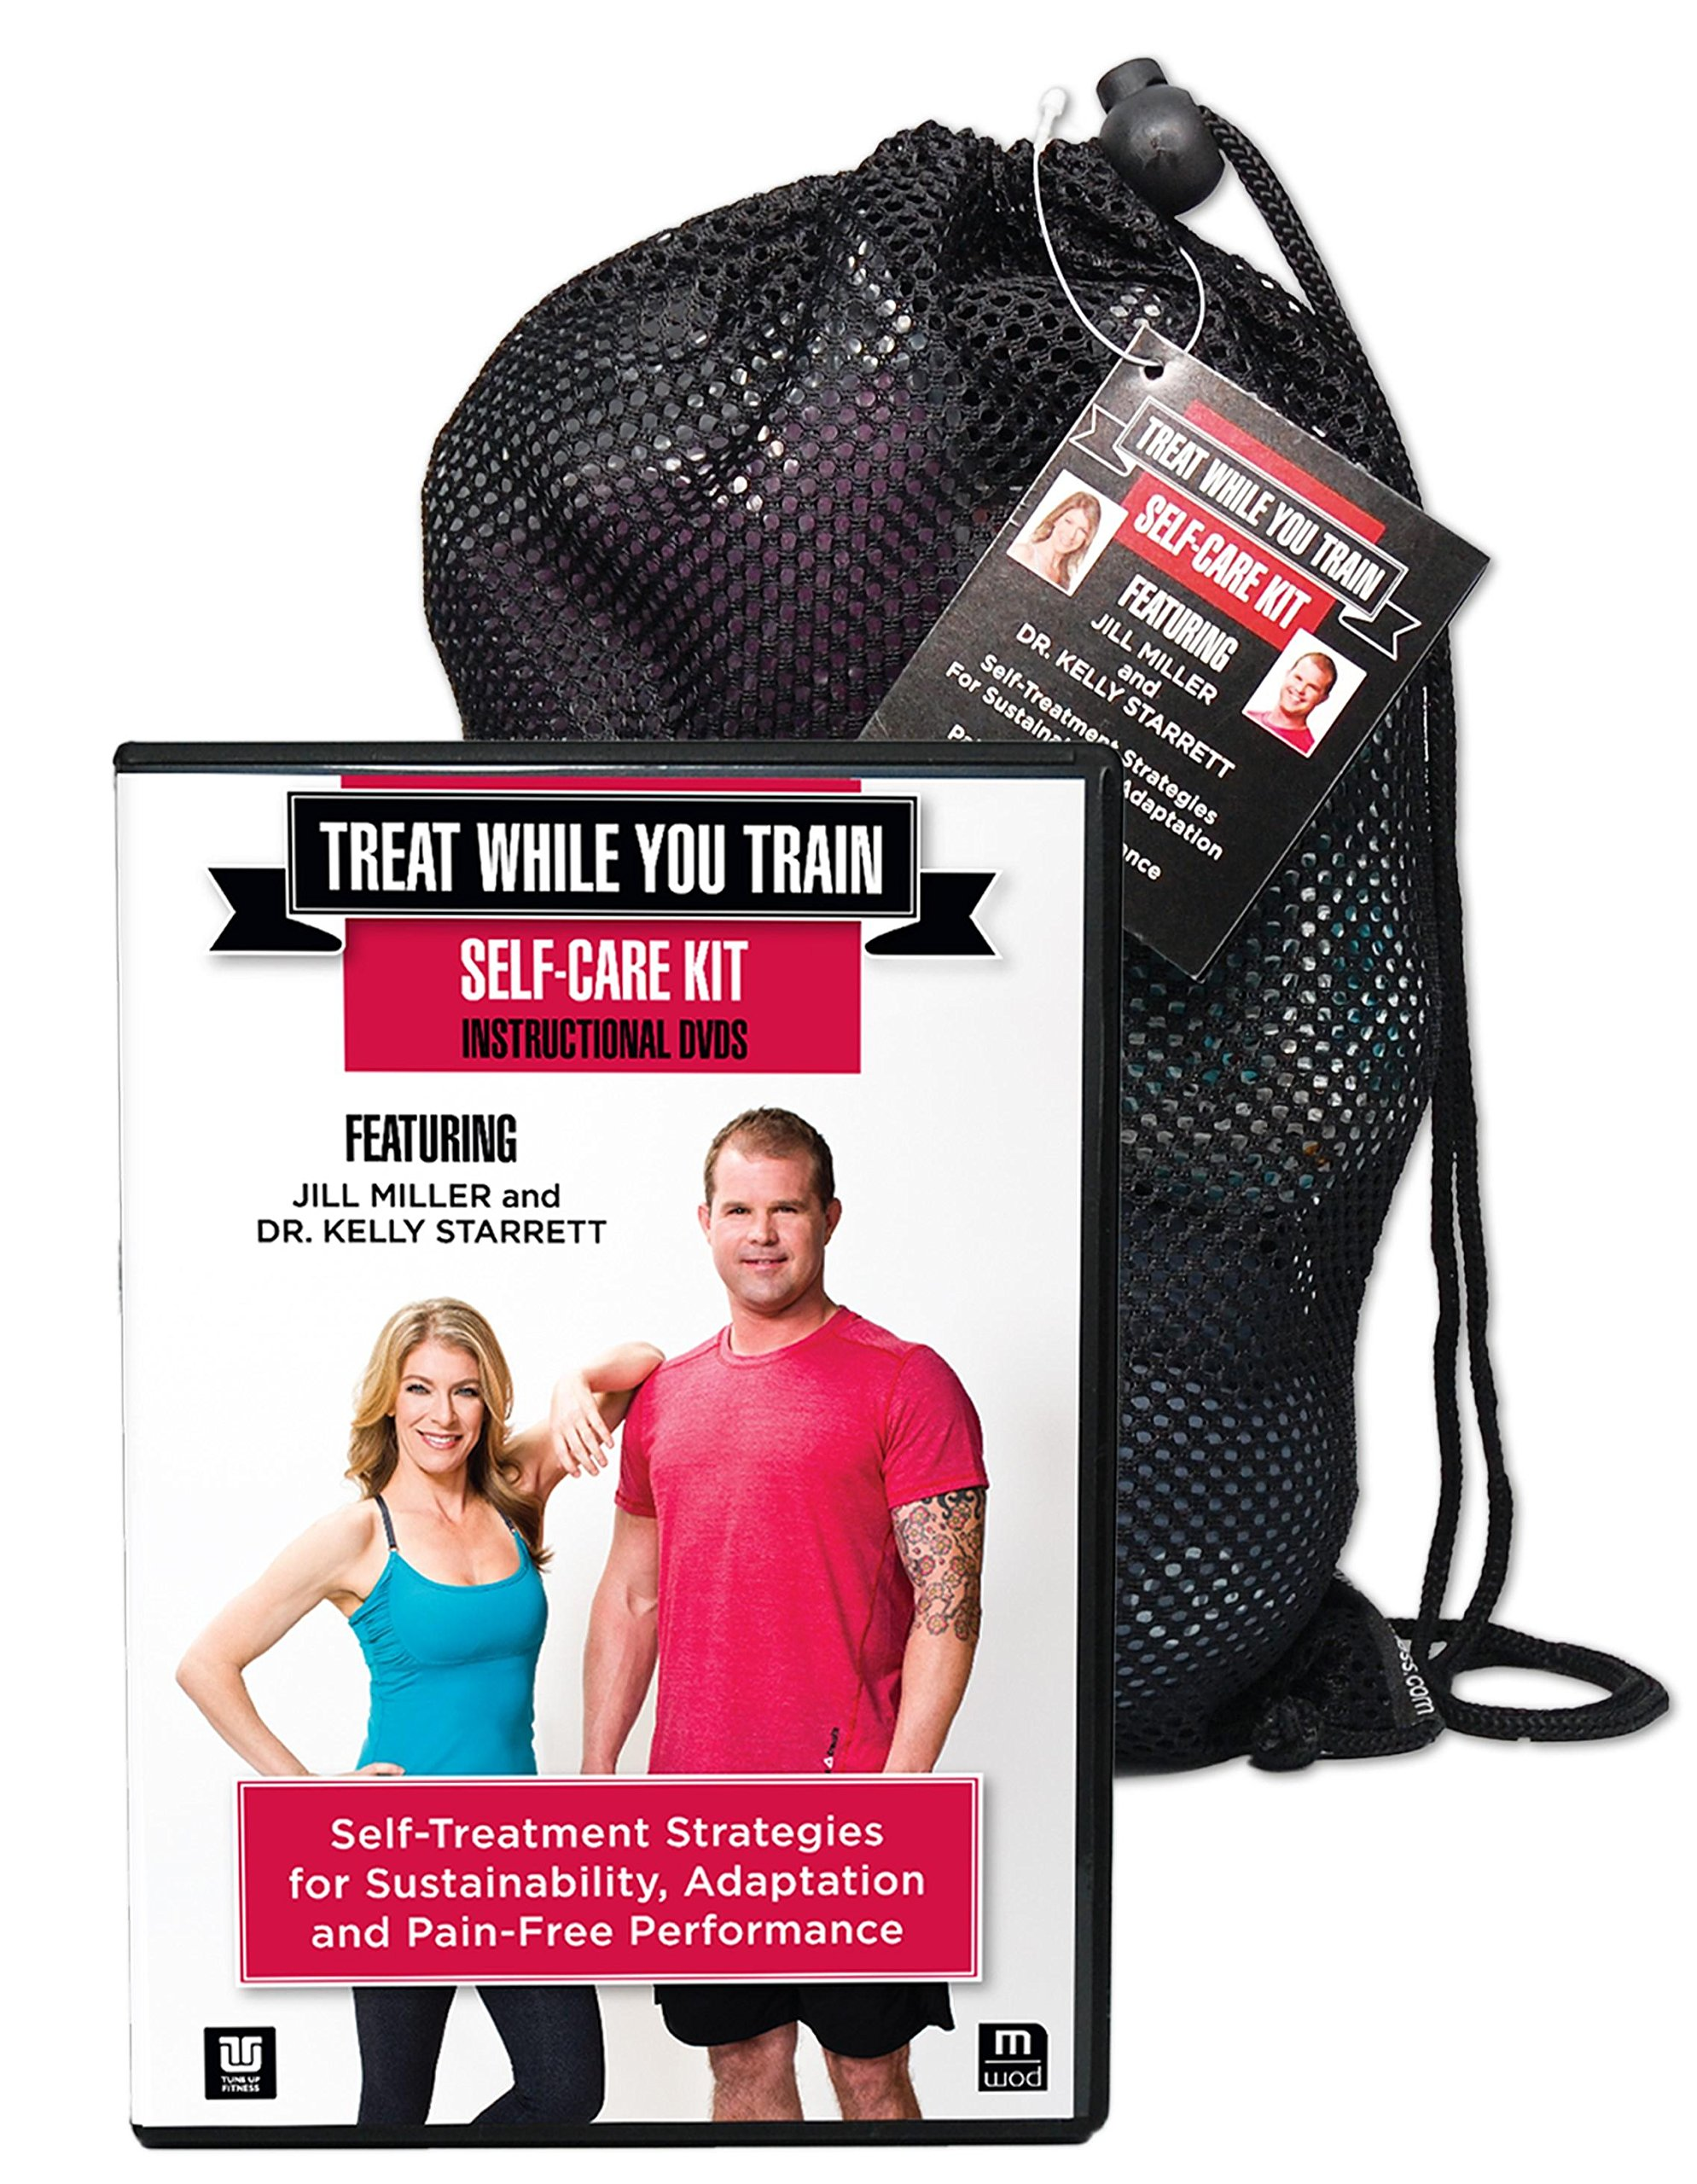 Tune Up Fitness Treat While You Train Kit with Jill Miller and Kelly Starrett, 2 DVD Set and Full Roll Model Self Massage Therapy Ball Set, Improve Mobility, Myofascial Release, Trigger Point Therapy by Tune Up Fitness